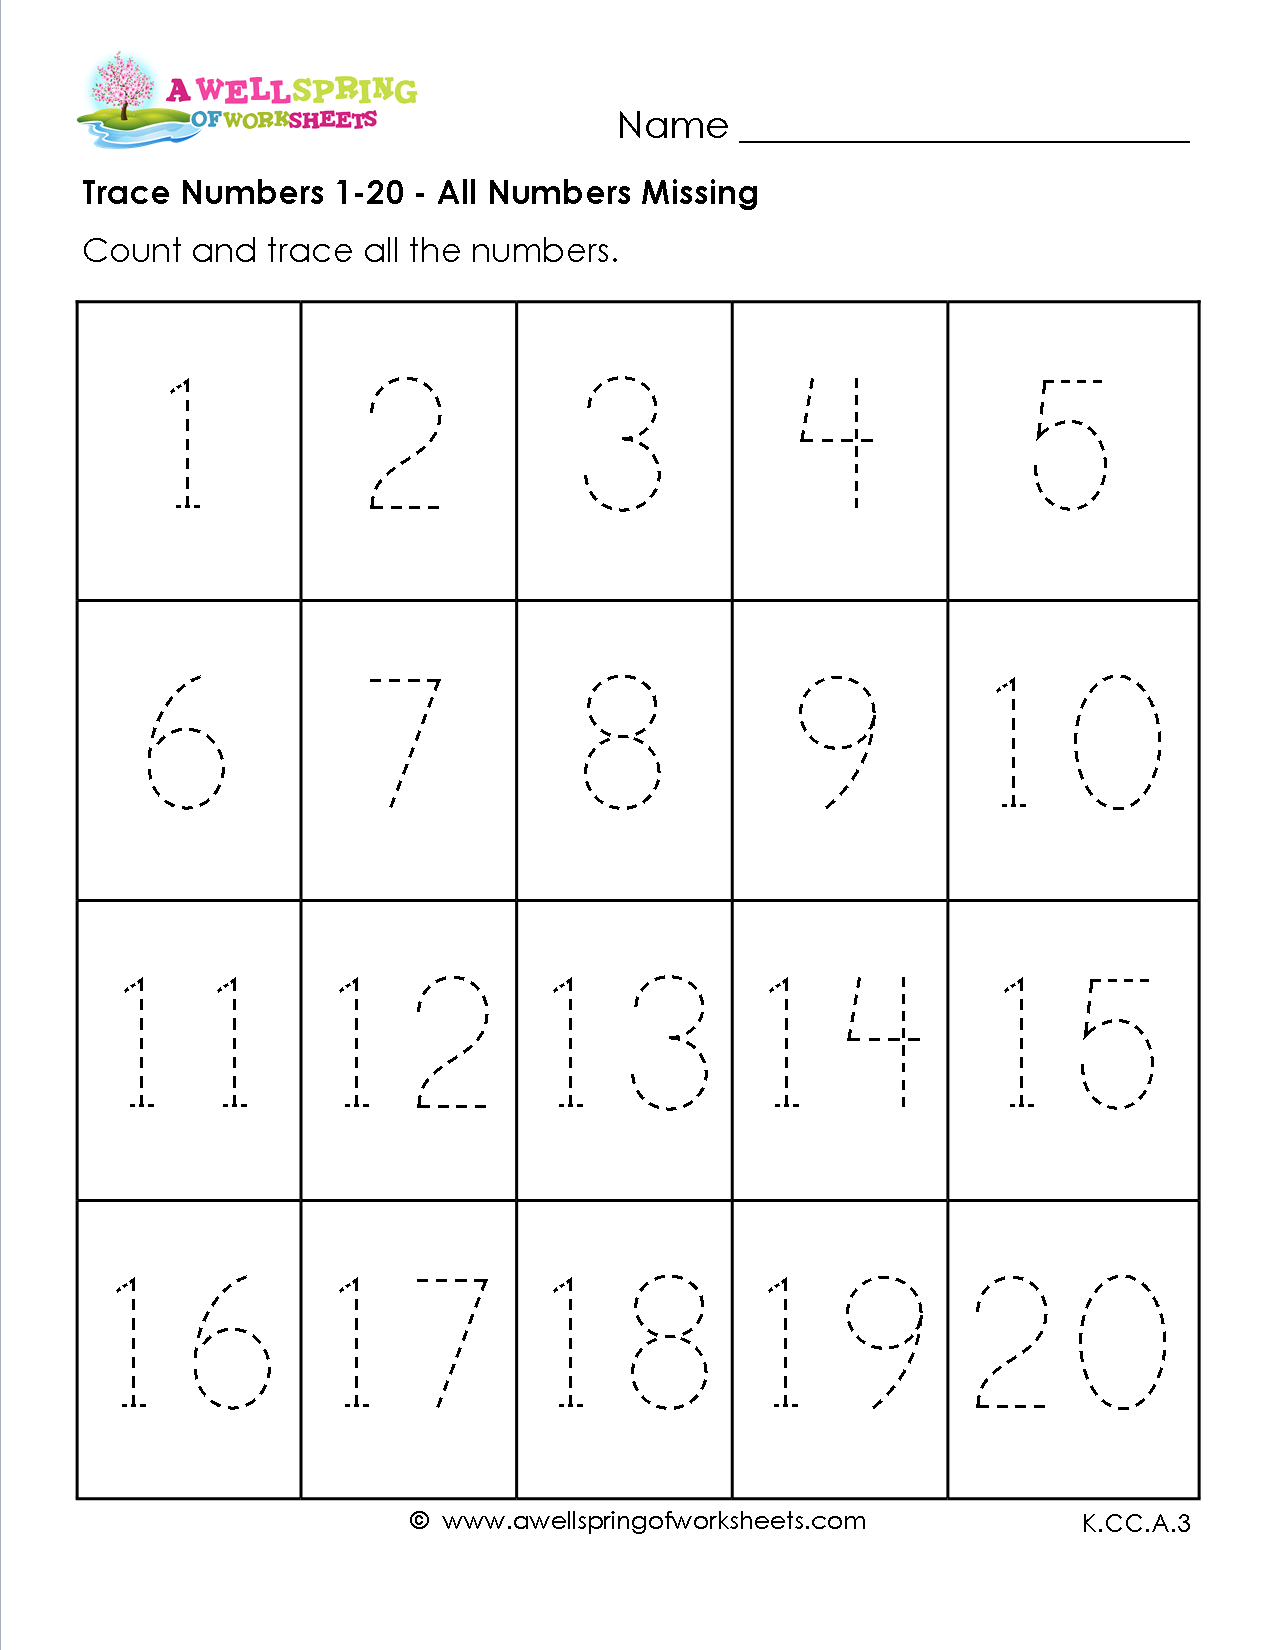 Worksheets Tracing Worksheets For Kindergarten grade level worksheets kindergarten math pinterest trace numbers 1 20 in these six number tracing kids all the half or only a few of n